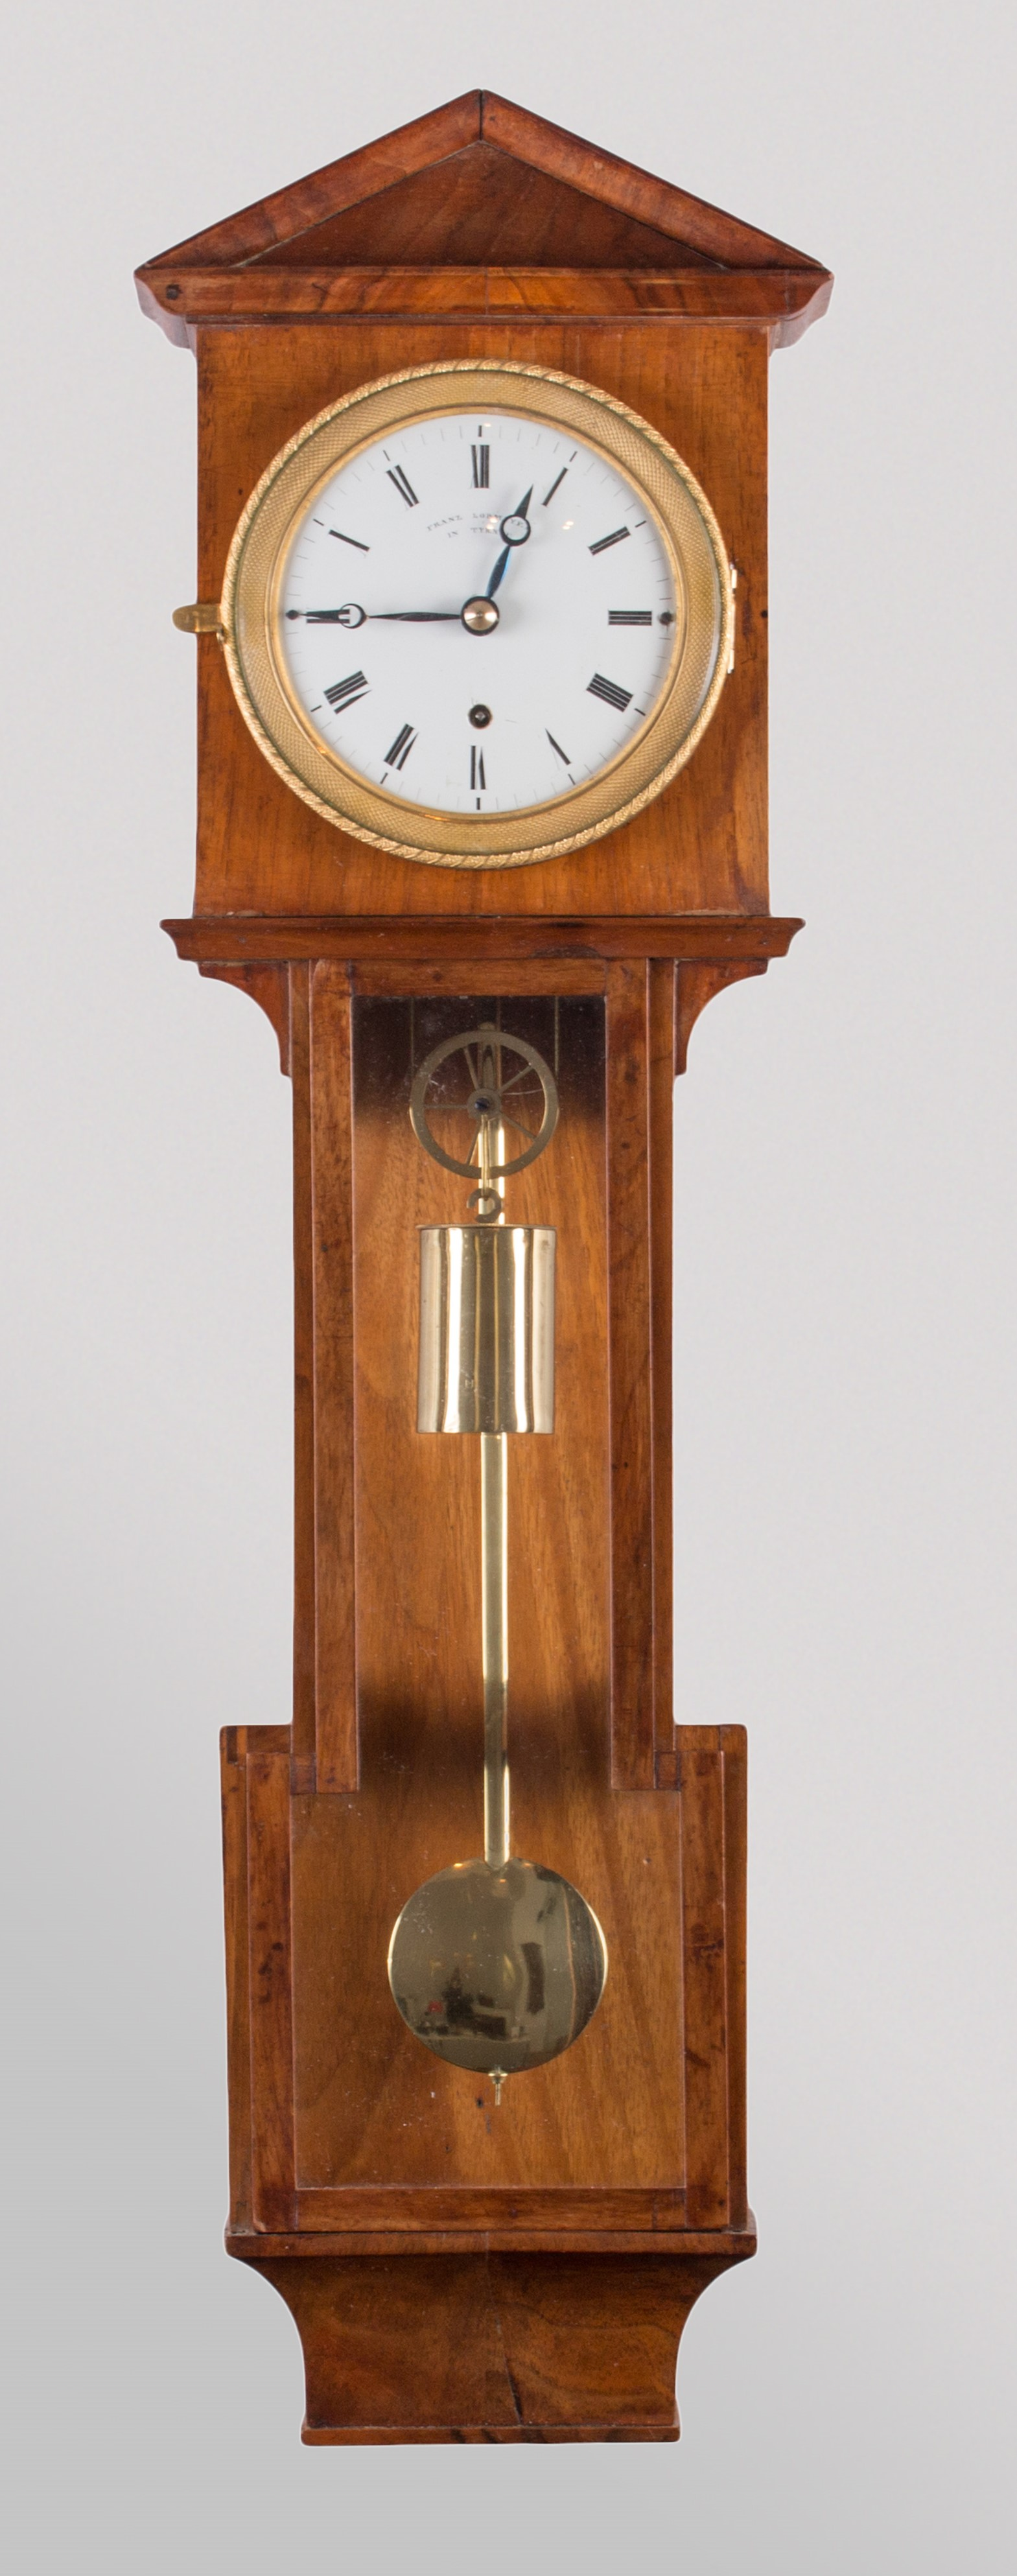 Small Laterndl clock by Franz Lobmayer with 10 days duration, c. 1830.